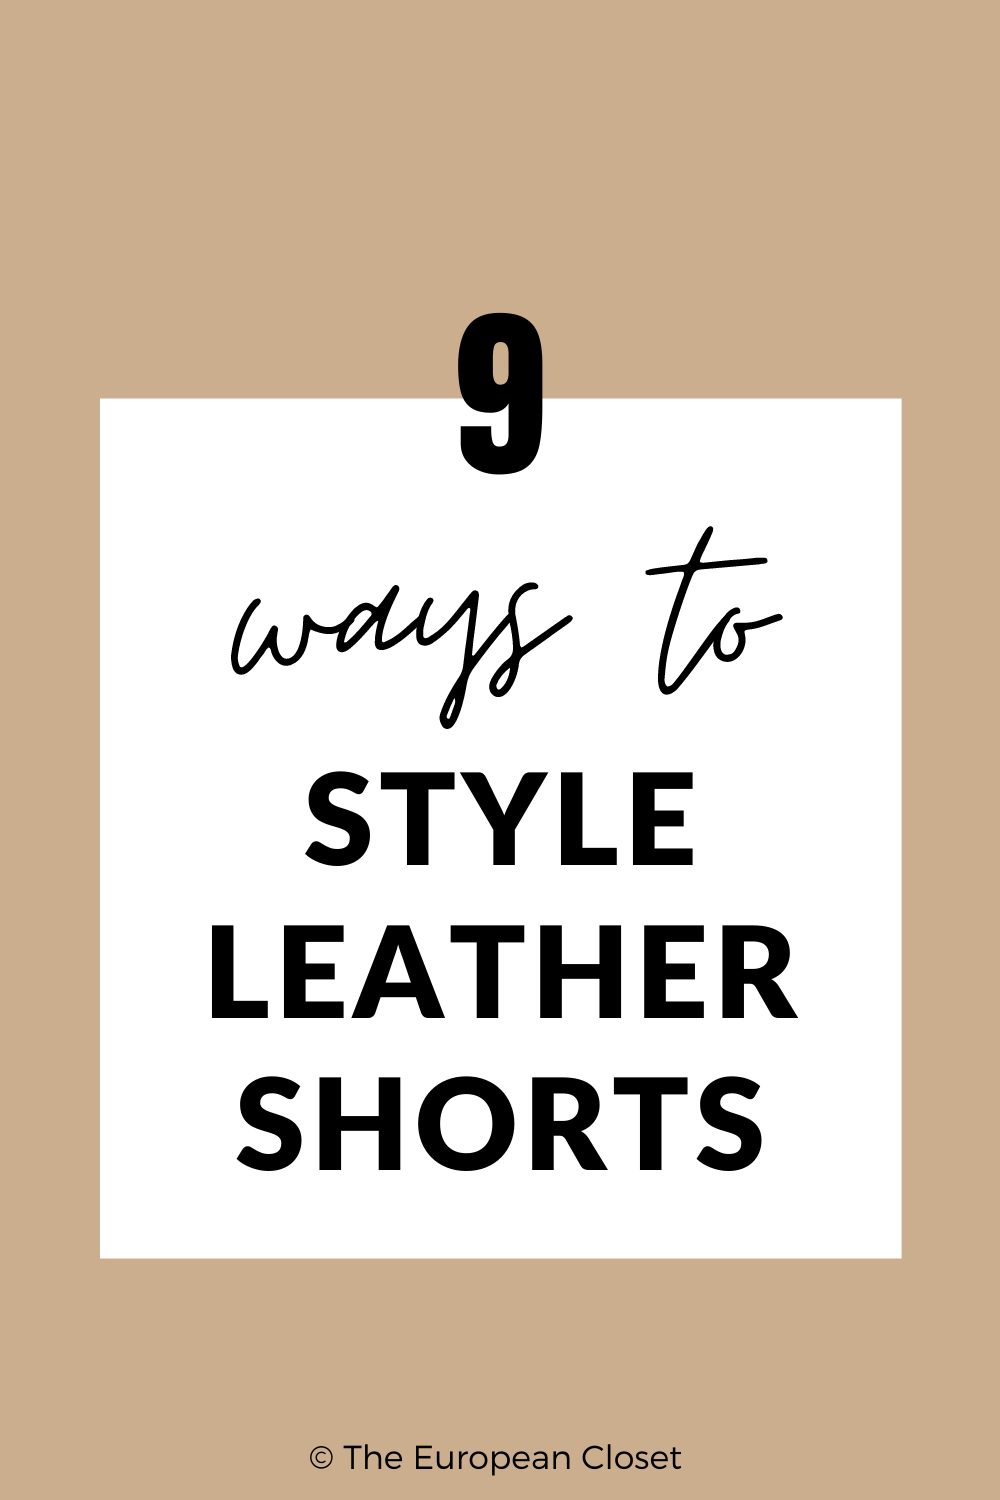 In today's post, I'm showing you 9 ways you can style leather shorts. They can be worn anywhere which makes them a great wardrobe staple!